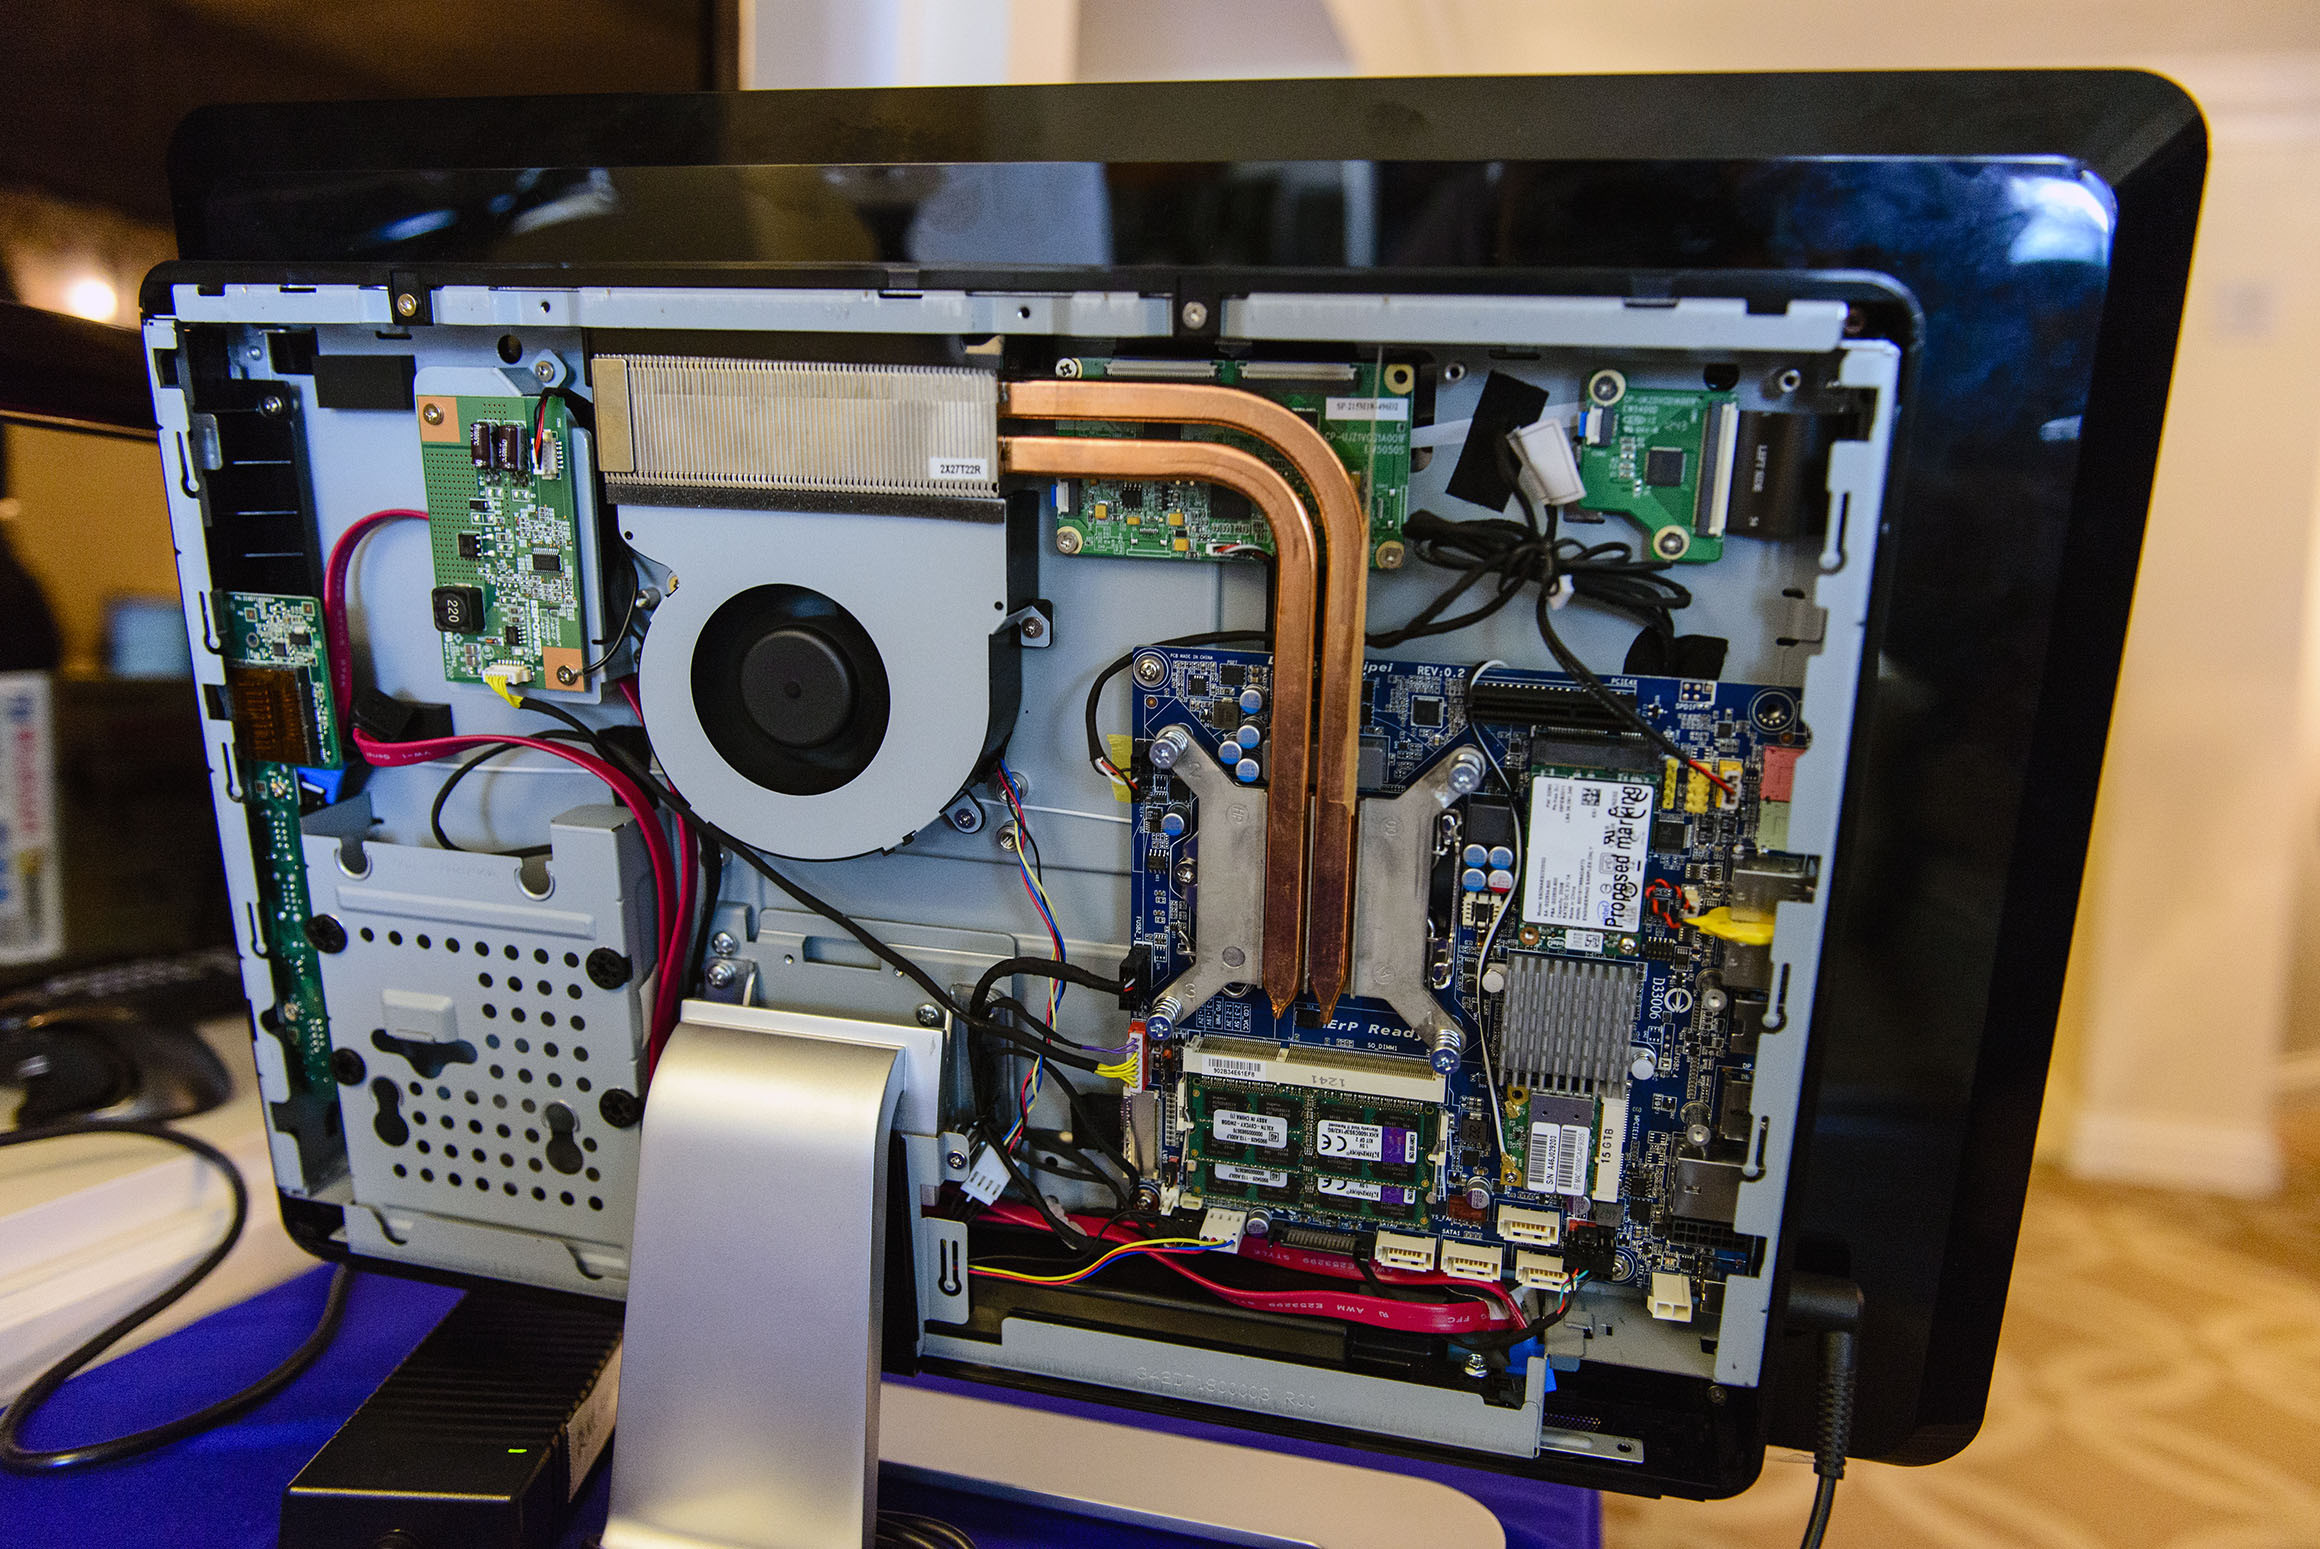 Best ideas about DIY Computer Case . Save or Pin Gigabyte wants you to build your own all in one Now.